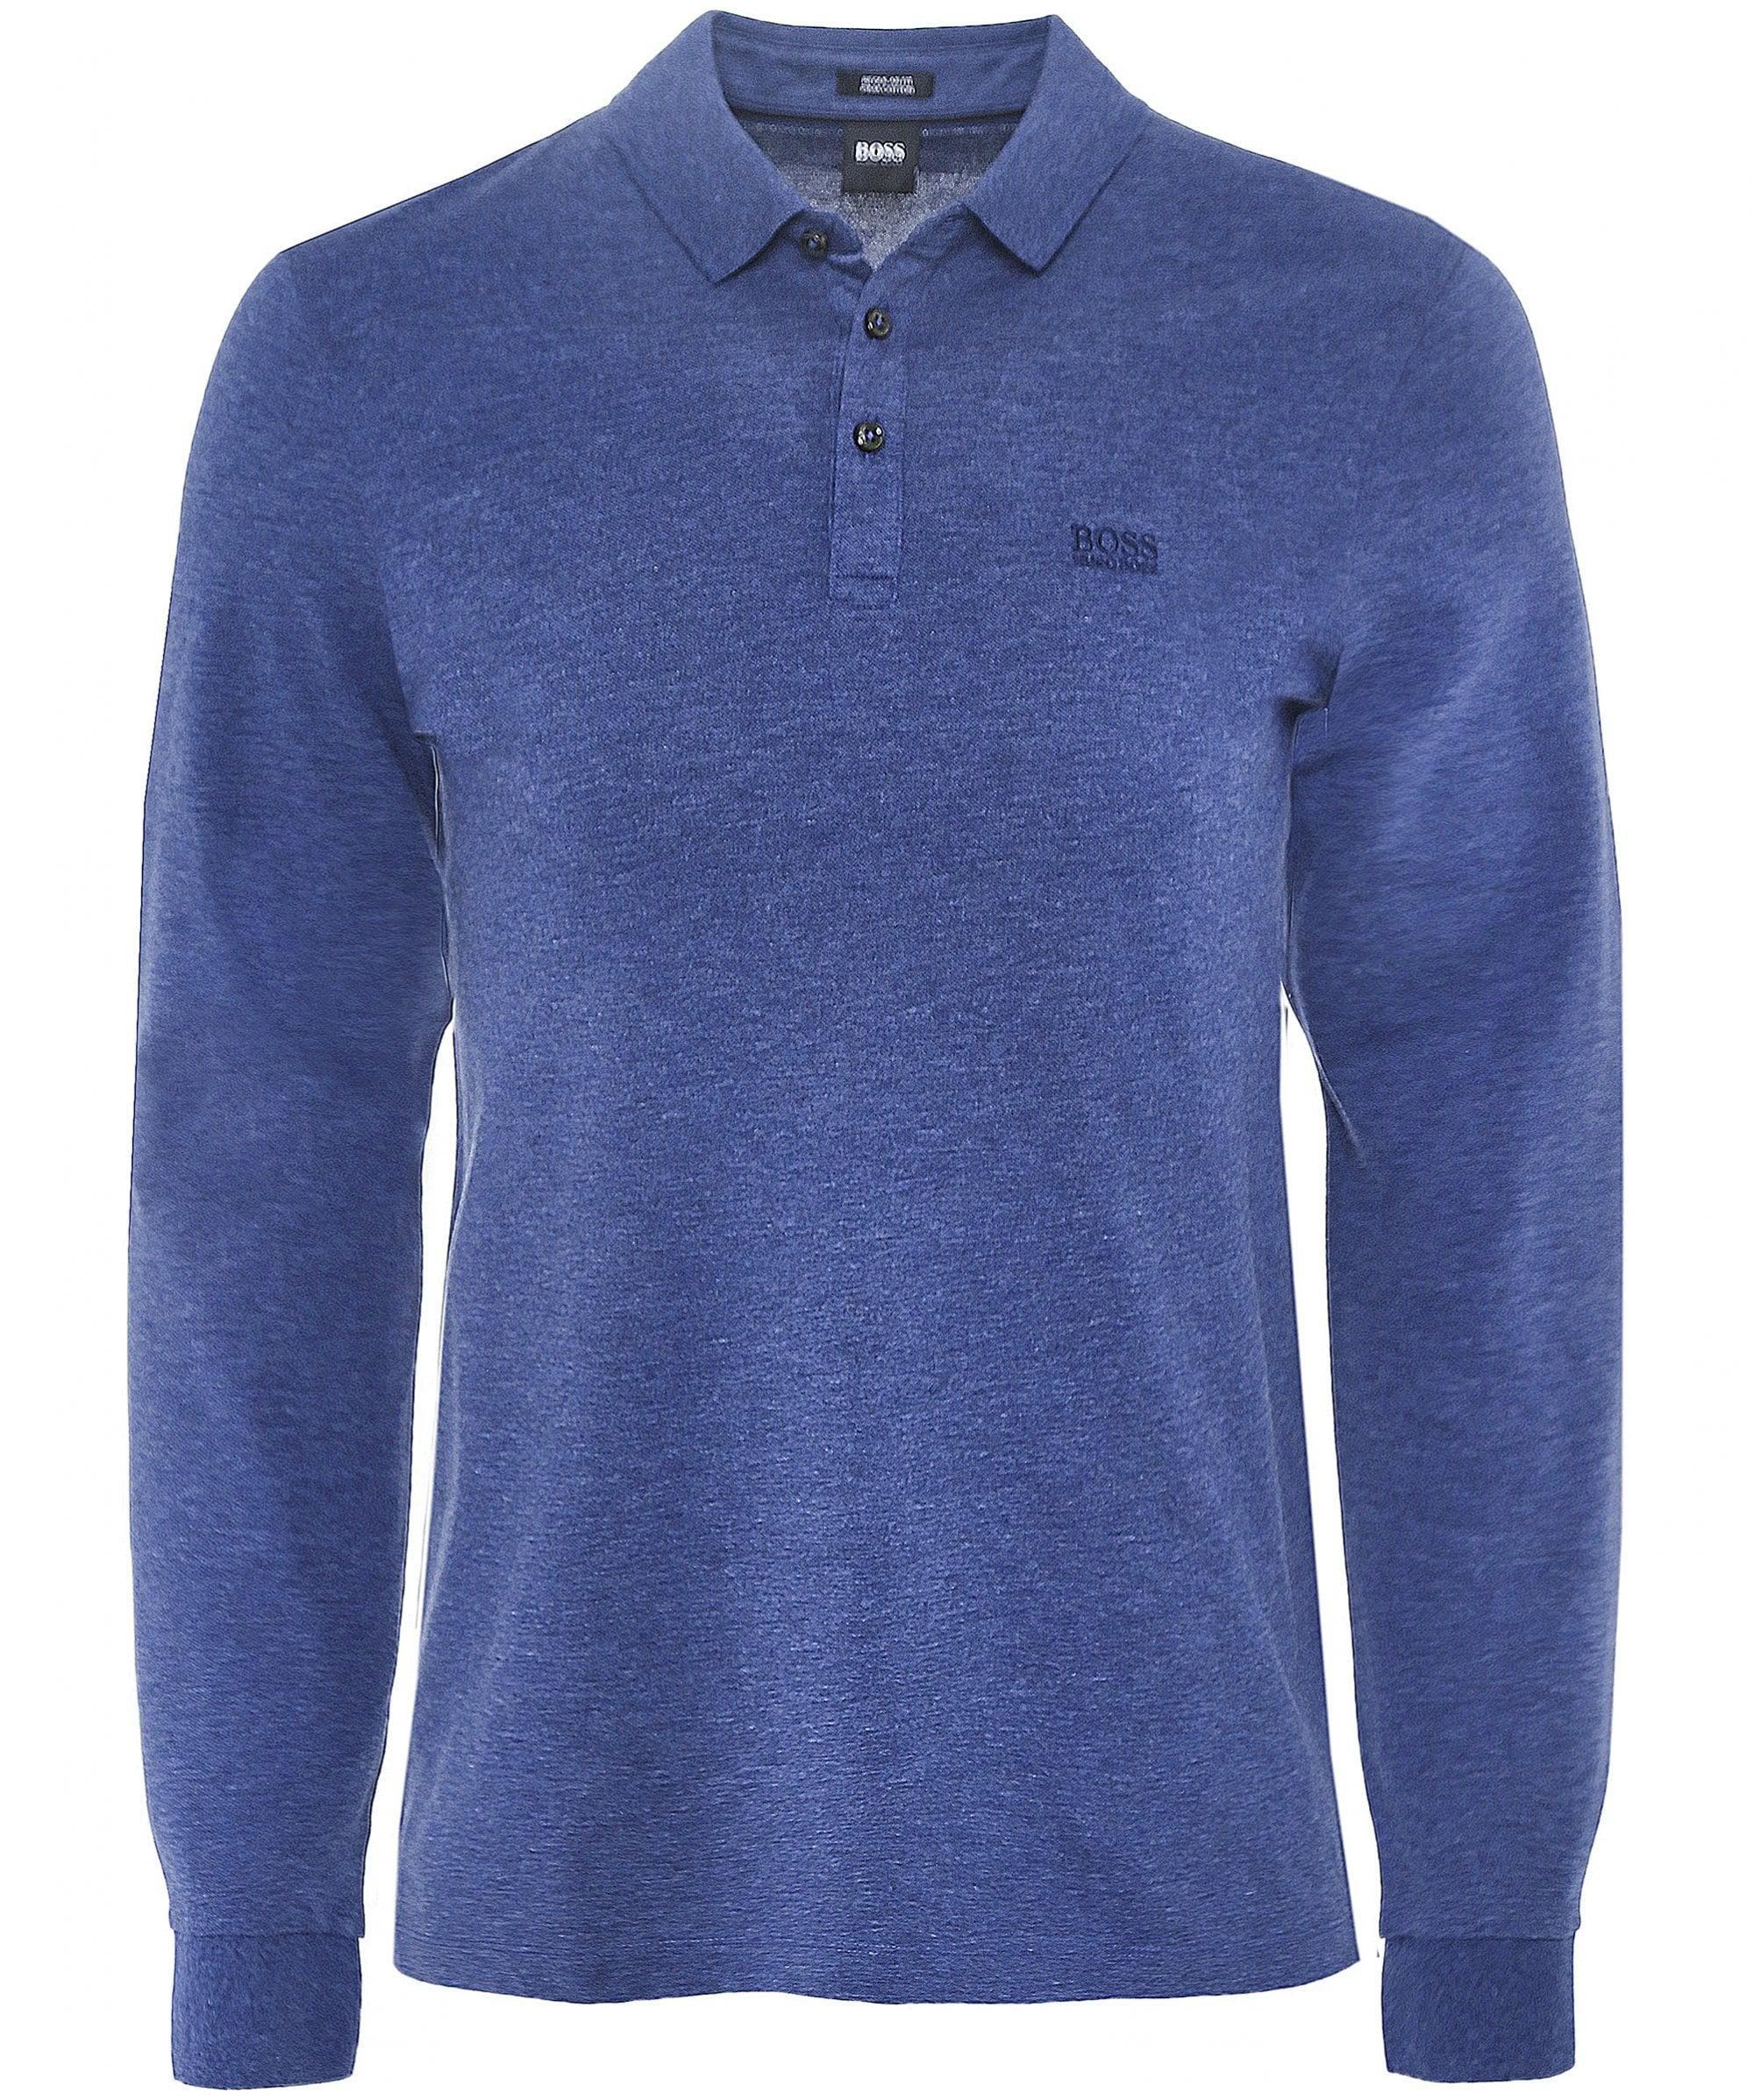 de07c7c7 BOSS - Blue Long Sleeve Pado 10 Polo Shirt for Men - Lyst. View fullscreen